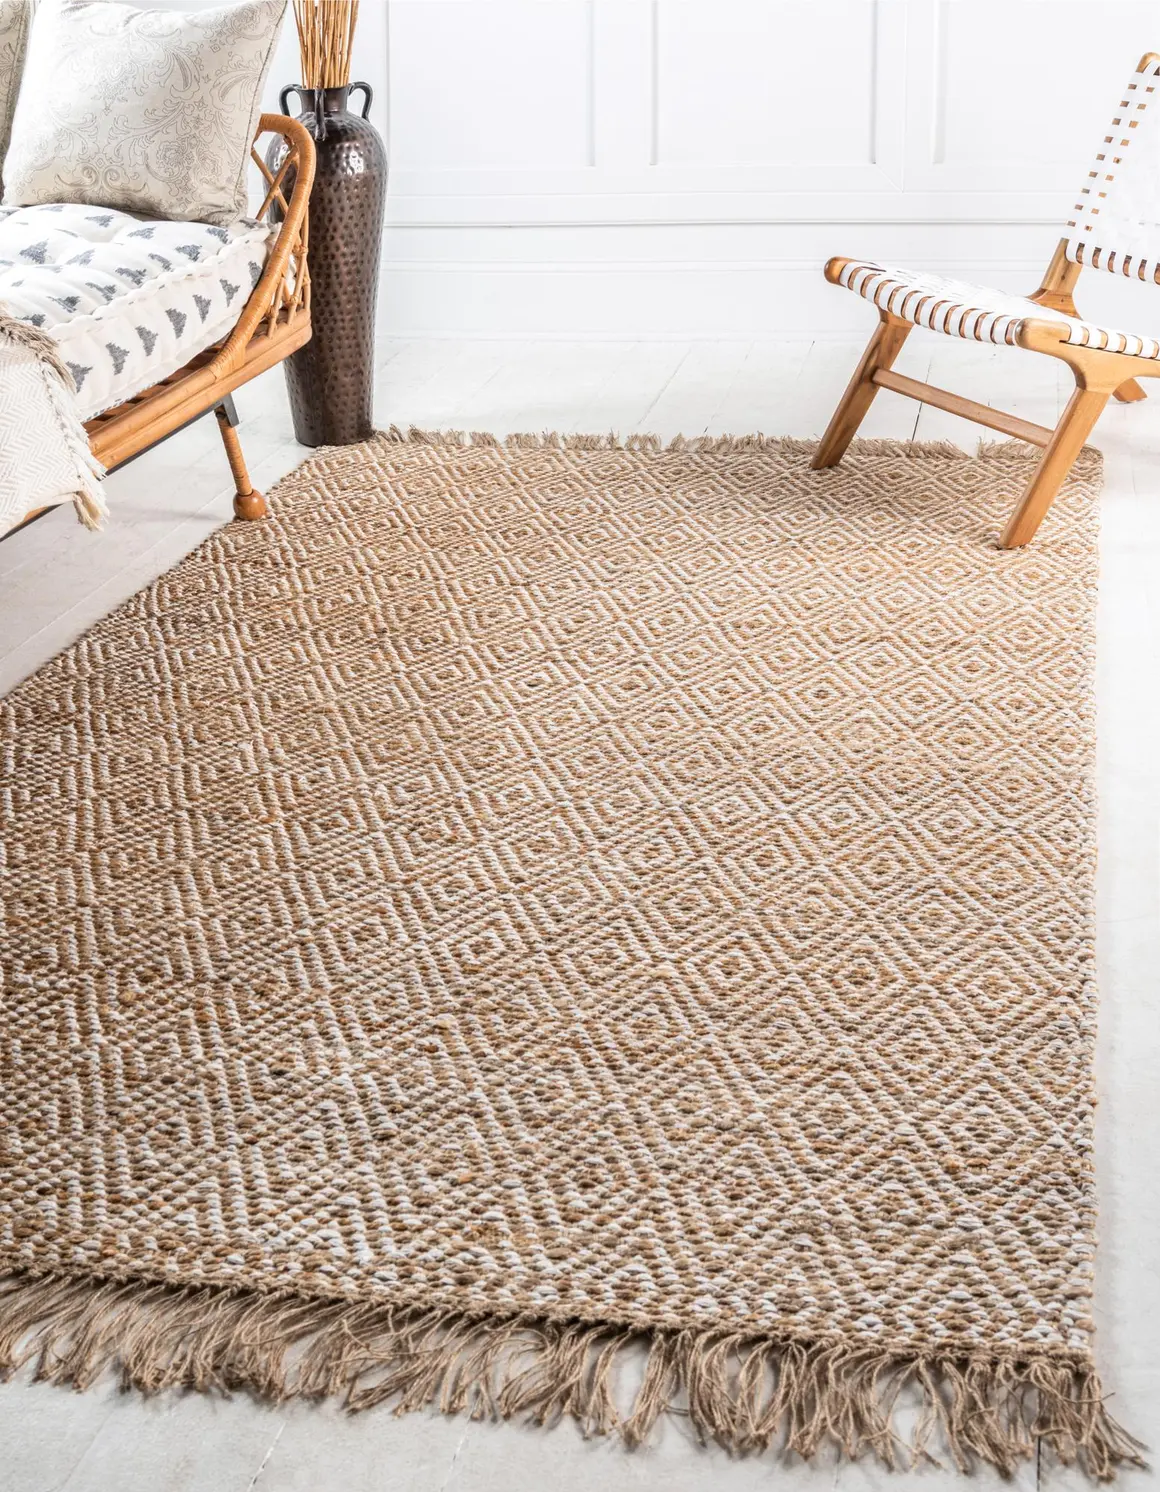 Jute Rug - 5 Best Rugs for Your Living Room Kaliuda Gallery Bali